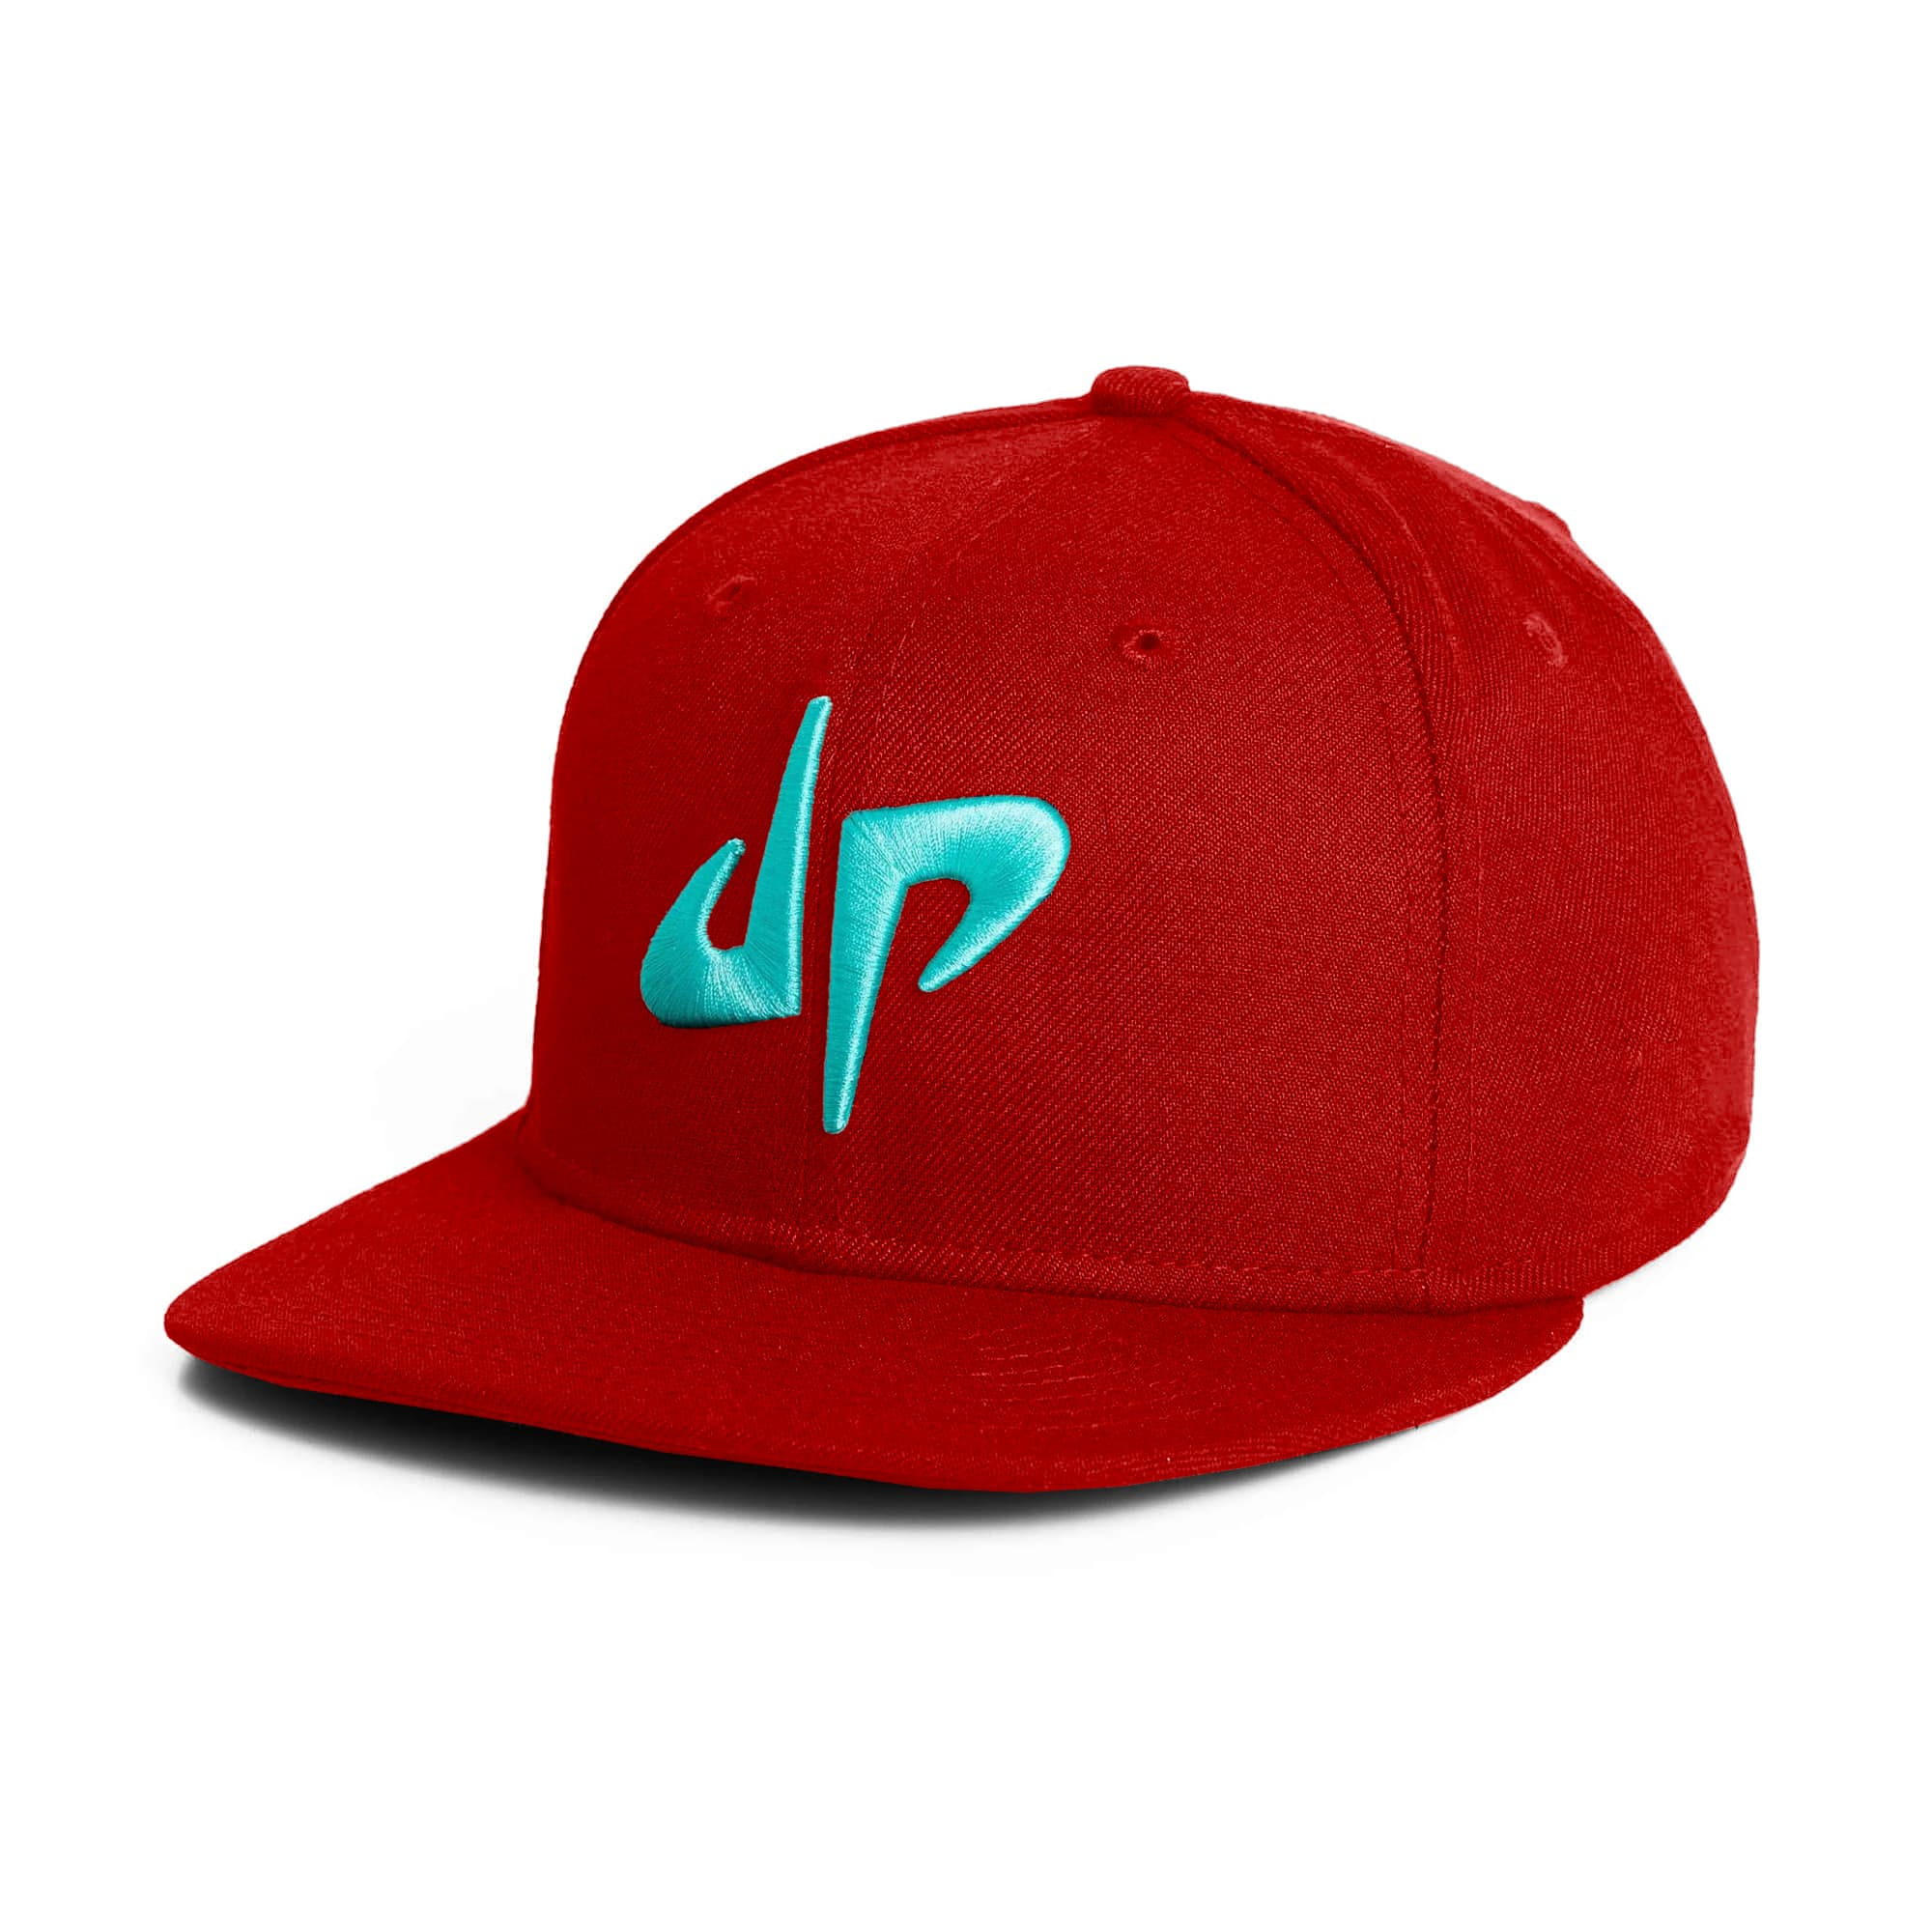 DP X New Era 9Fifty Snapback // Scarlet + Mint